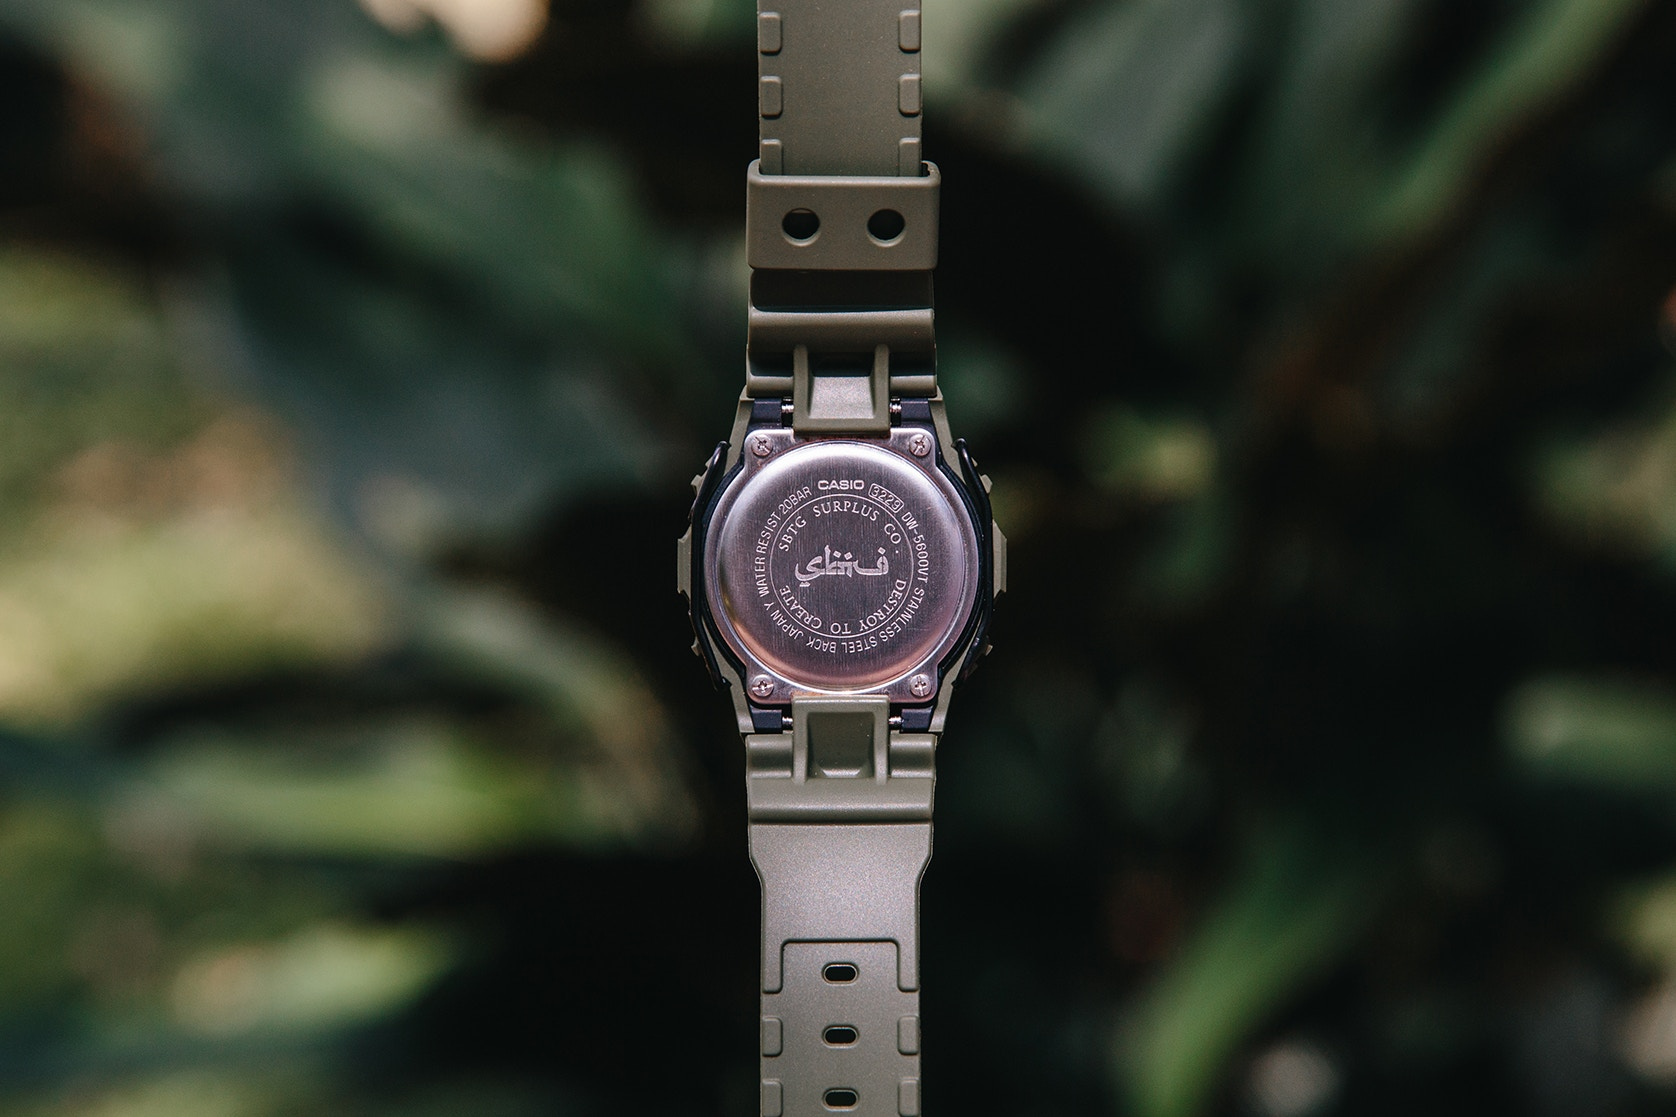 casio-g-shock-sbtg-dw-5600-2